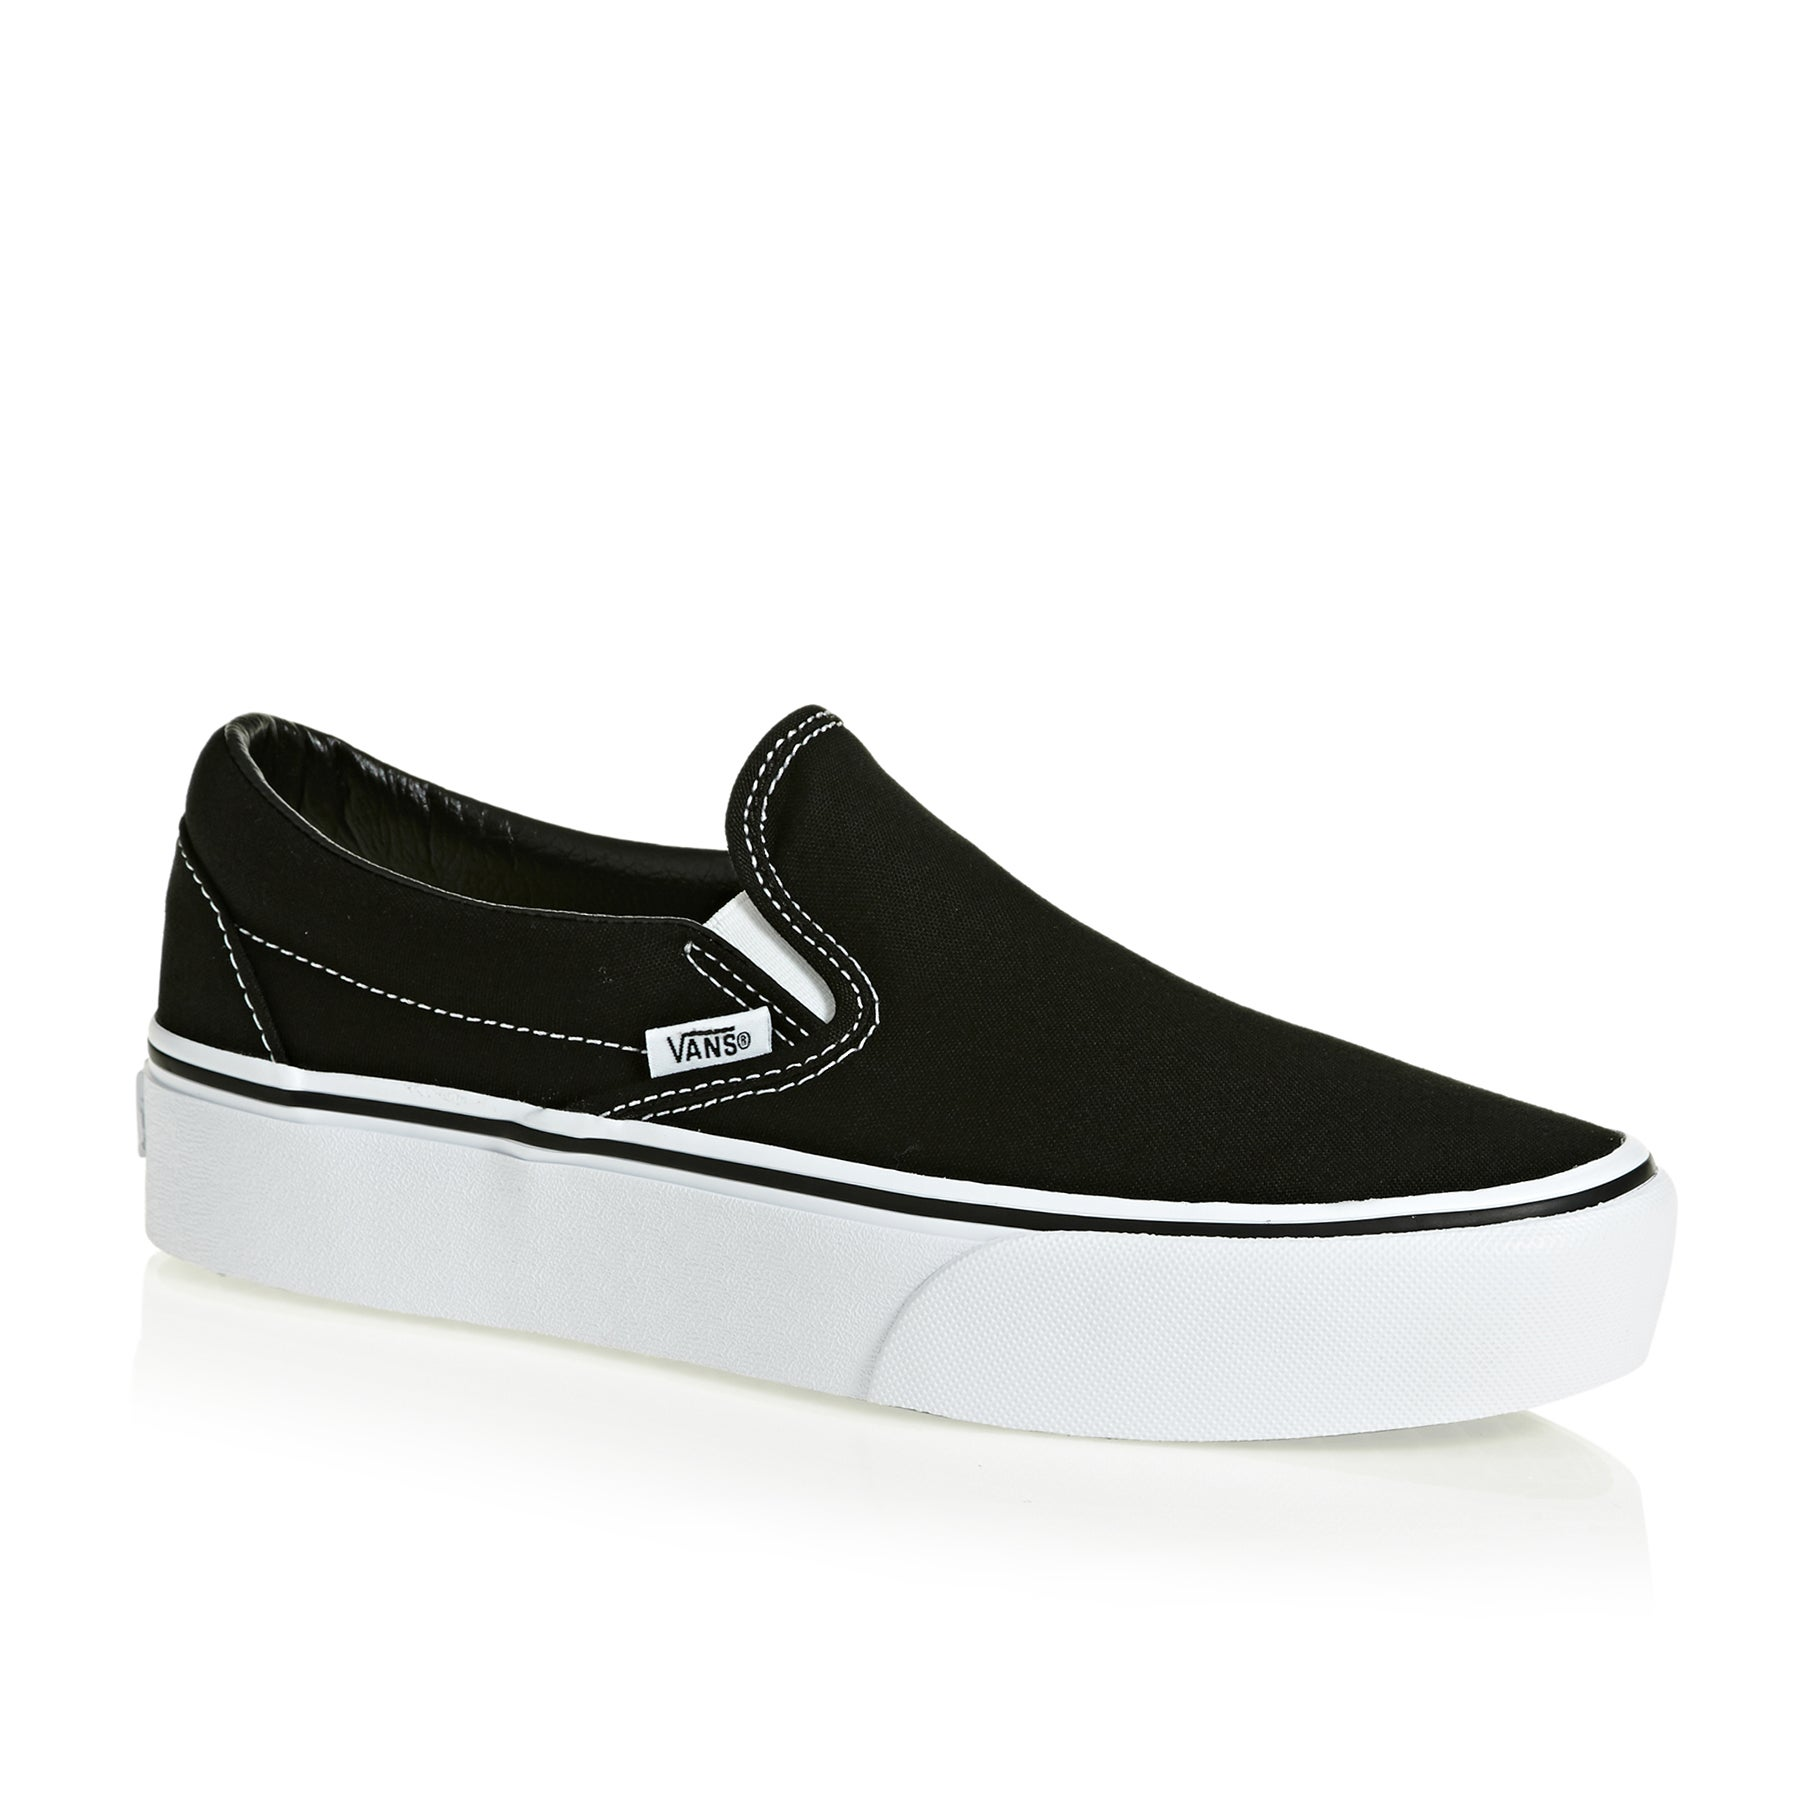 186937845da7 Vans Classic Platform Womens Slip On Shoes available from Surfdome